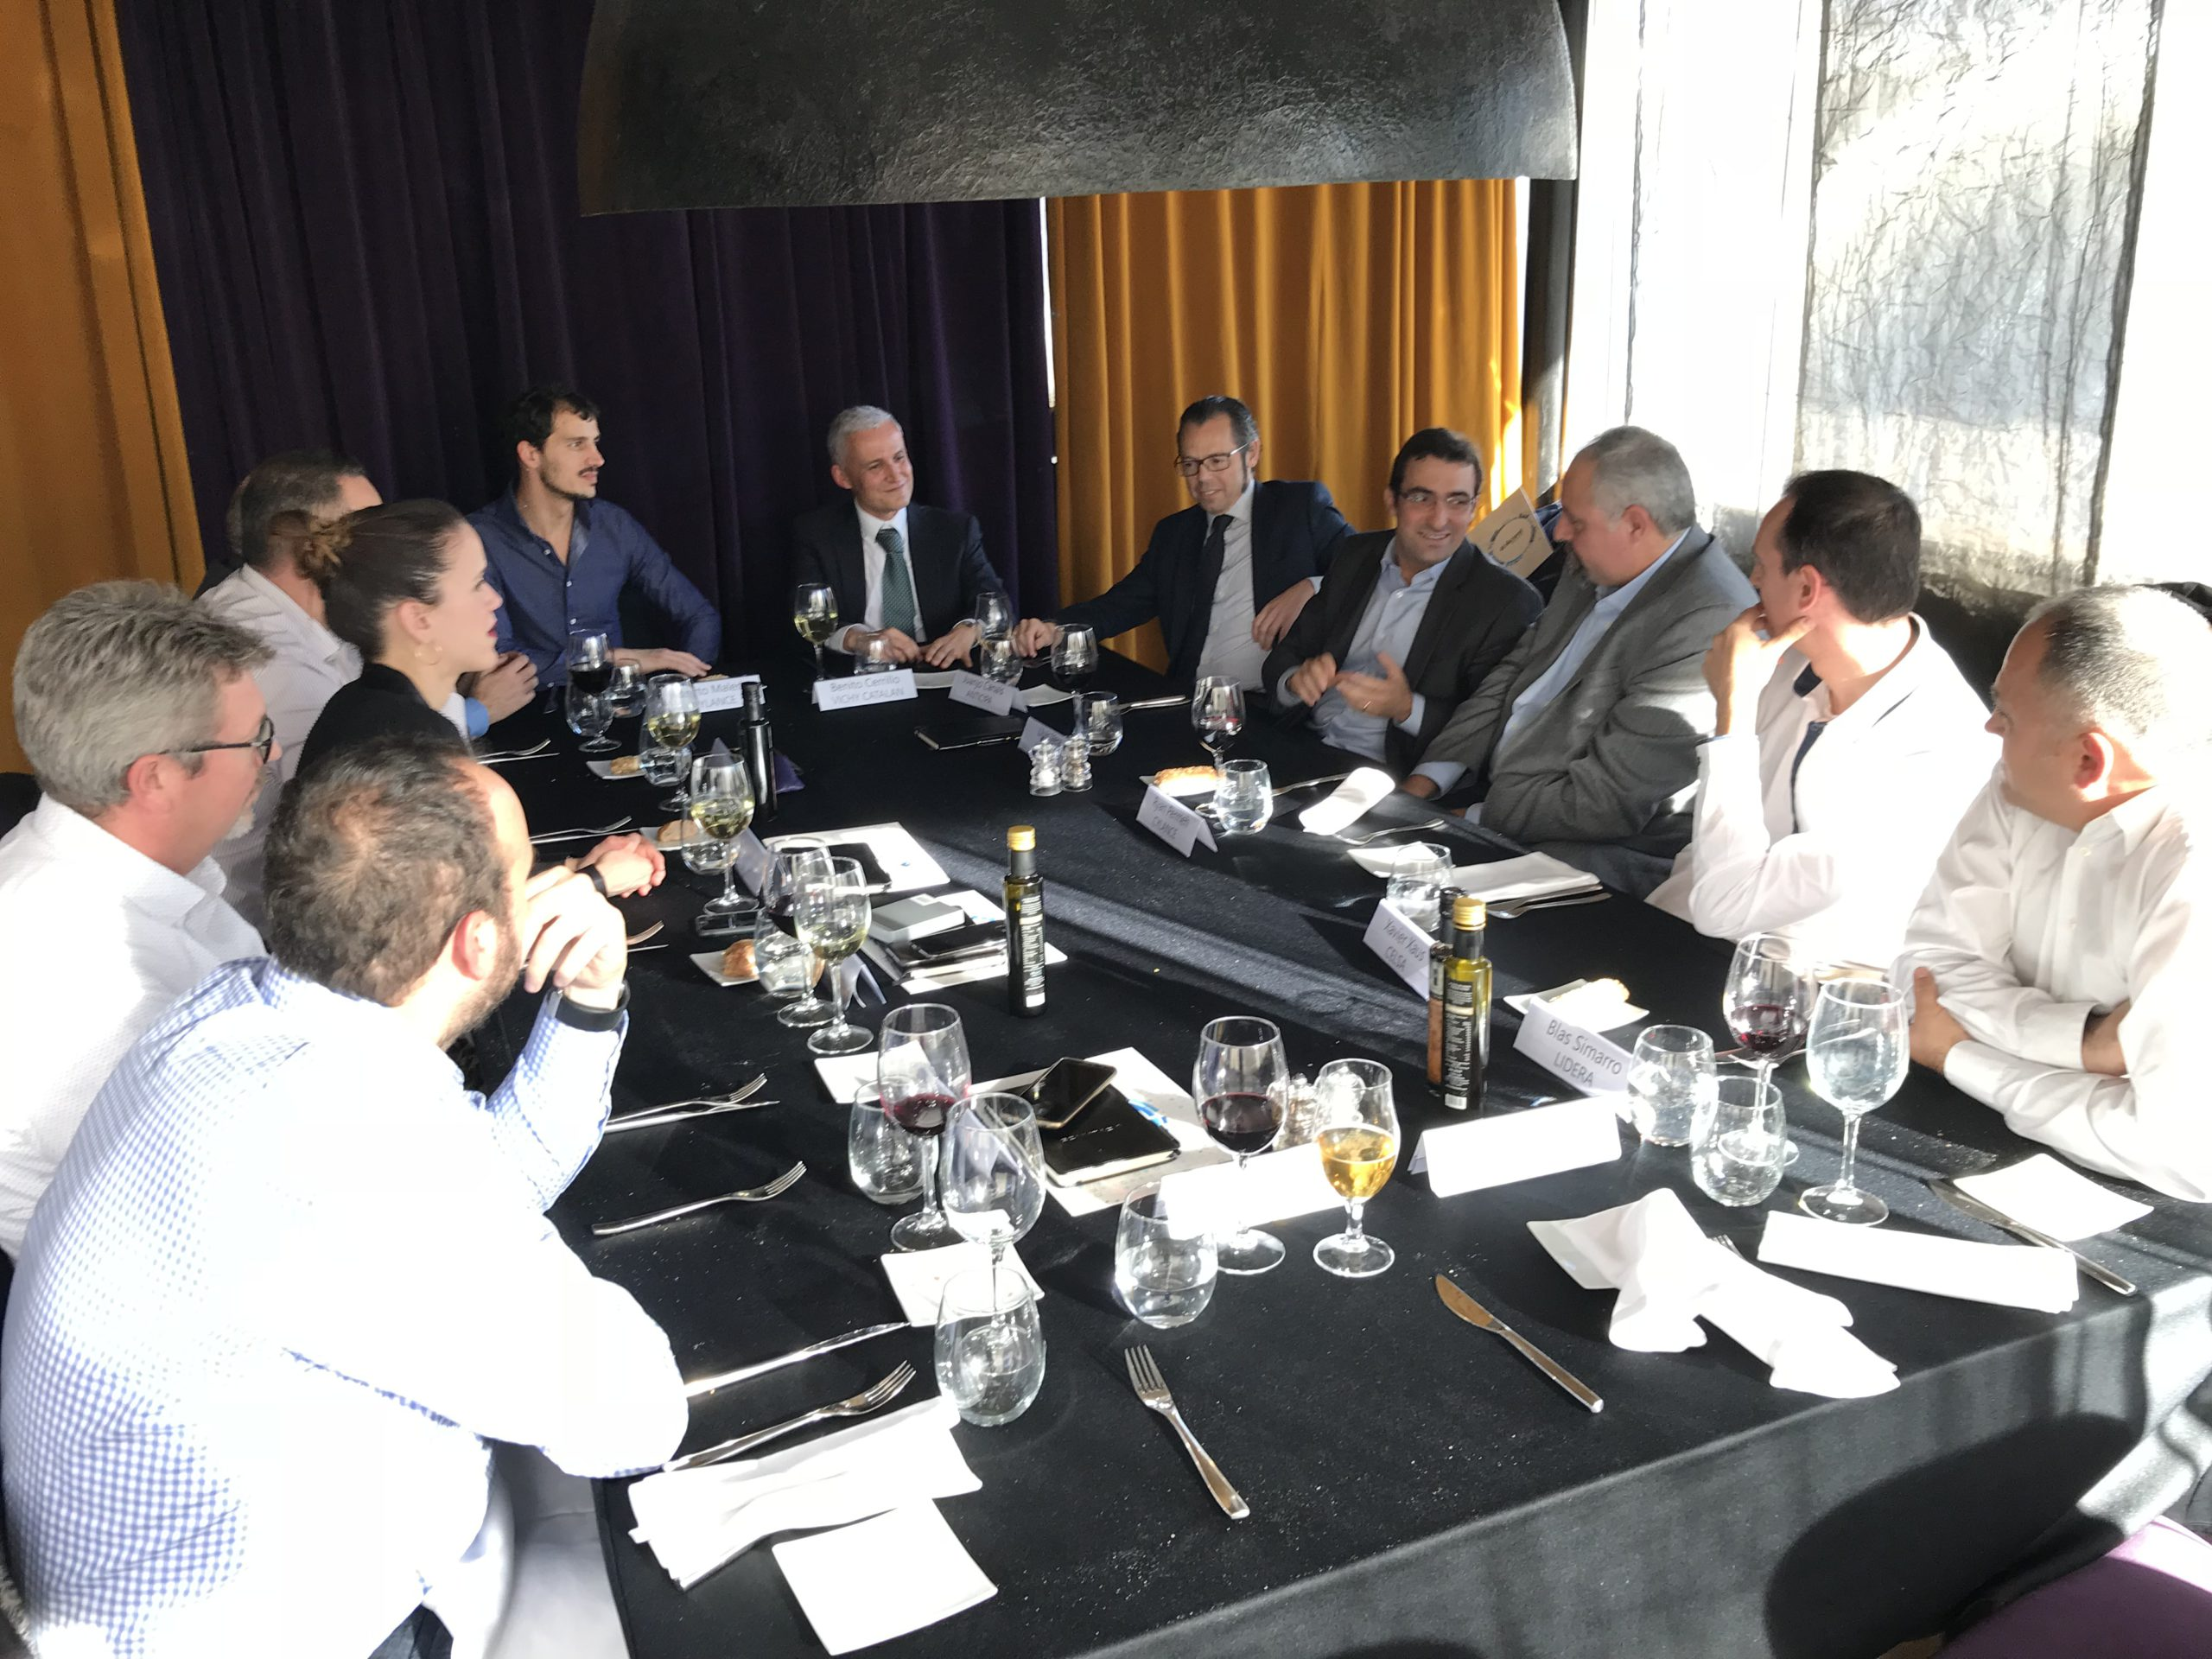 Ryan Permeh, Cylance's Co-Founder, attended the Ackcent Cybersecurity Lunch